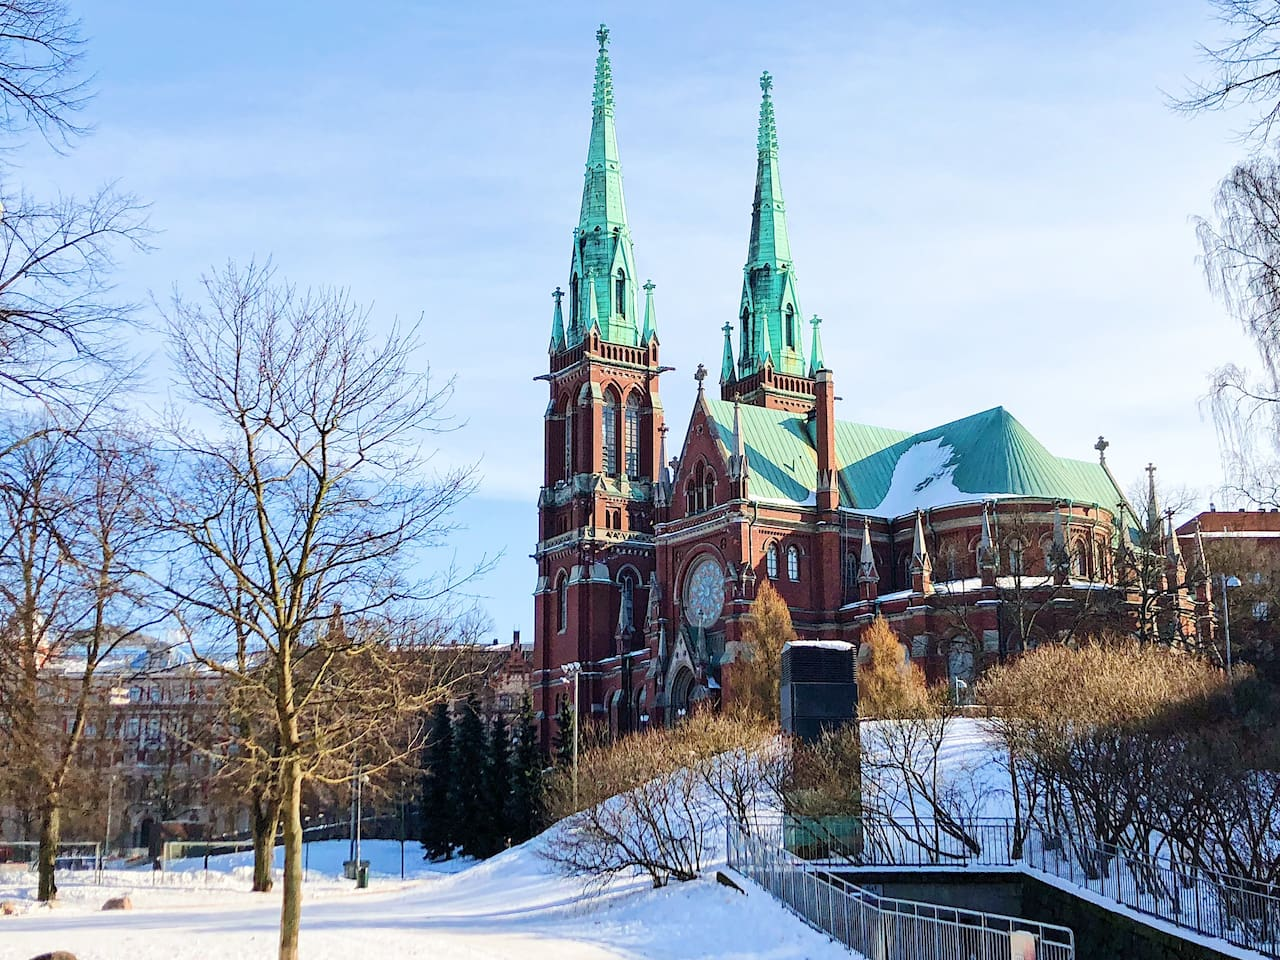 6 minutes walk to St.John's church, the largest church in Finland by seating capacity!